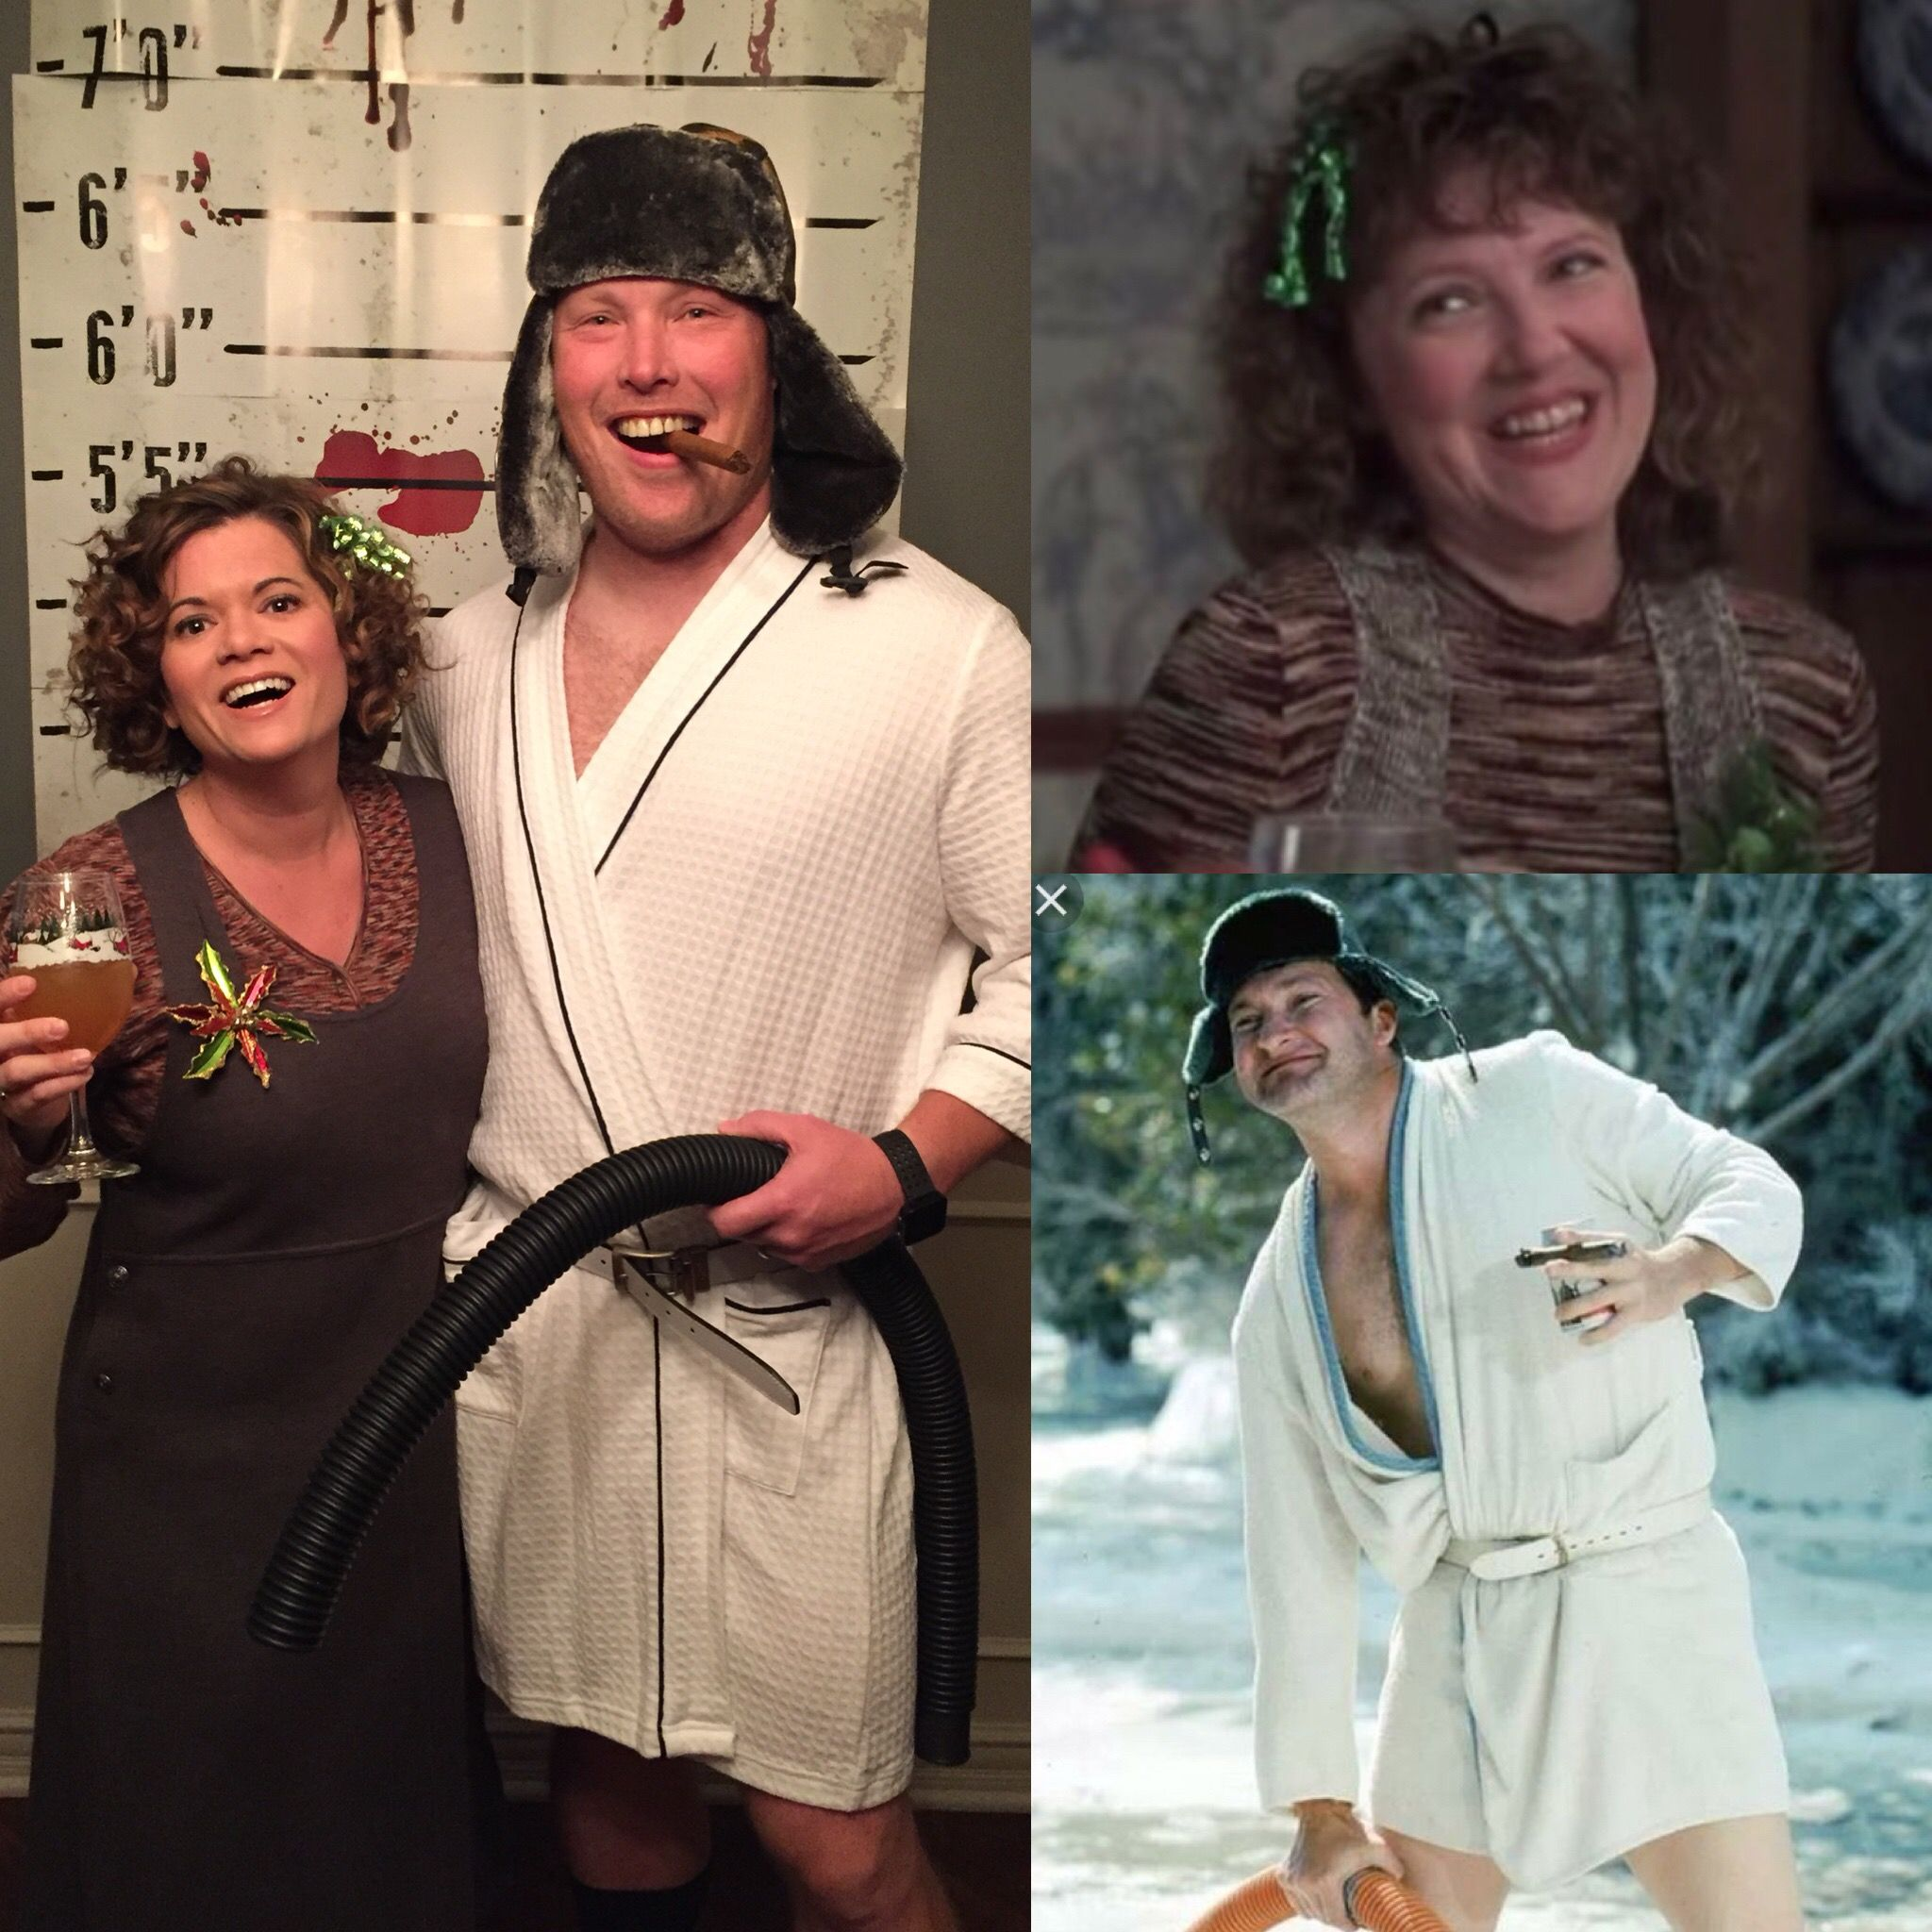 Cousin Eddie Catherine Christmas Vacation Costumes Christmas Vacation Party Christmas Character Costumes